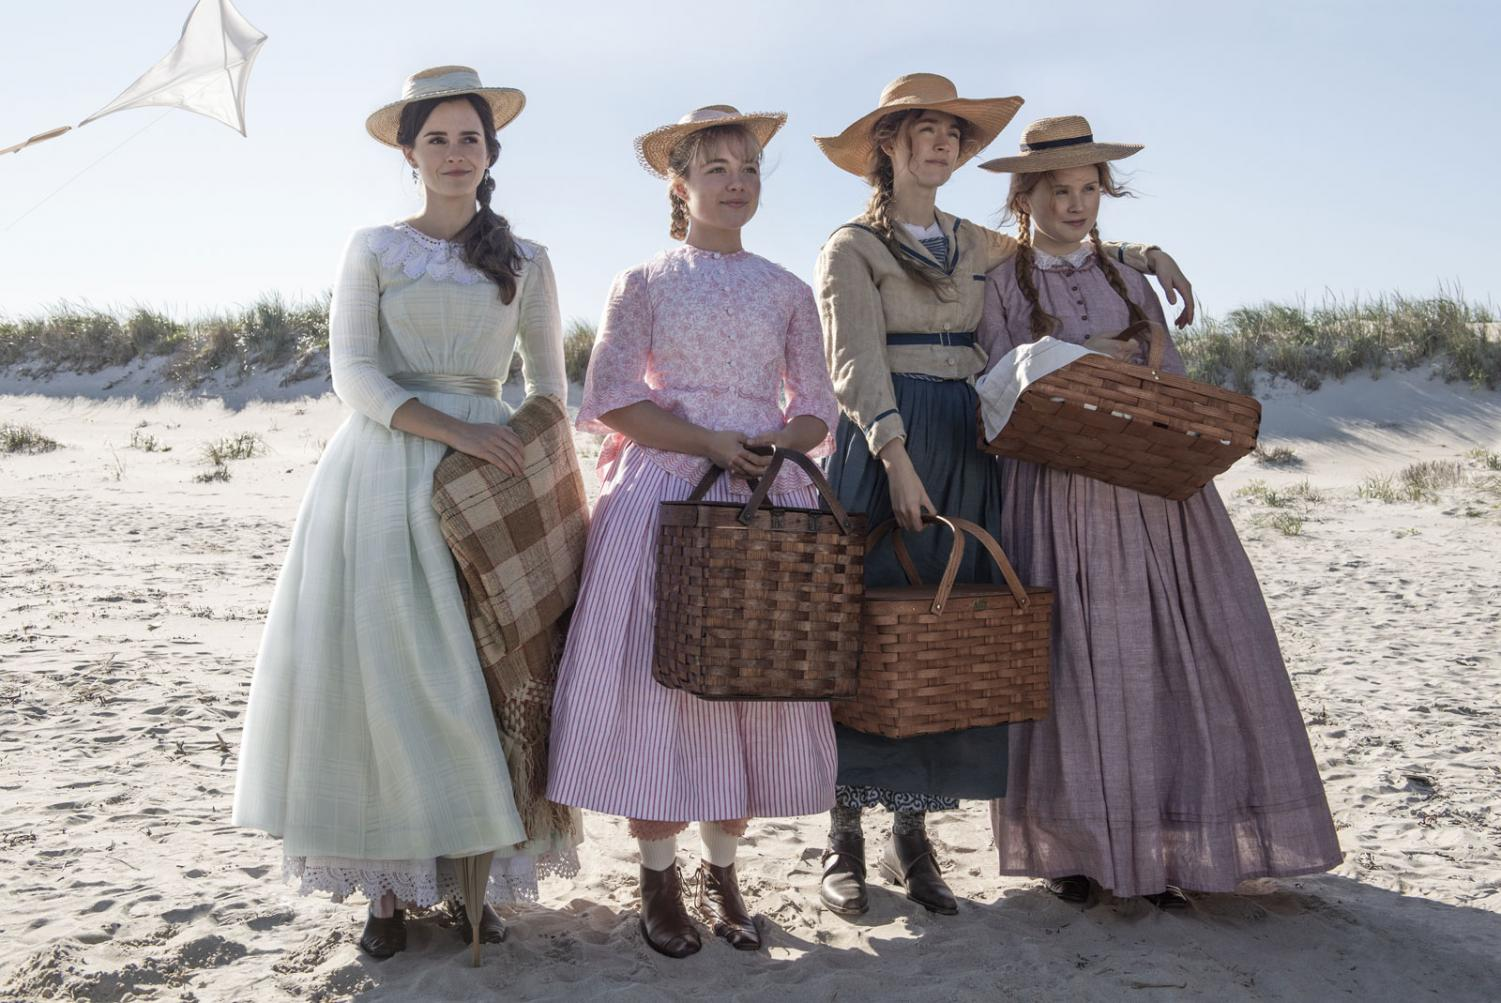 The March sisters stand together on a beach. Actors Emma Watson, Florence Pugh, Saoirse Ronan, and Eliza Scanlen are pictured. Photo obtained via Sony Pictures and Columbia Picture.